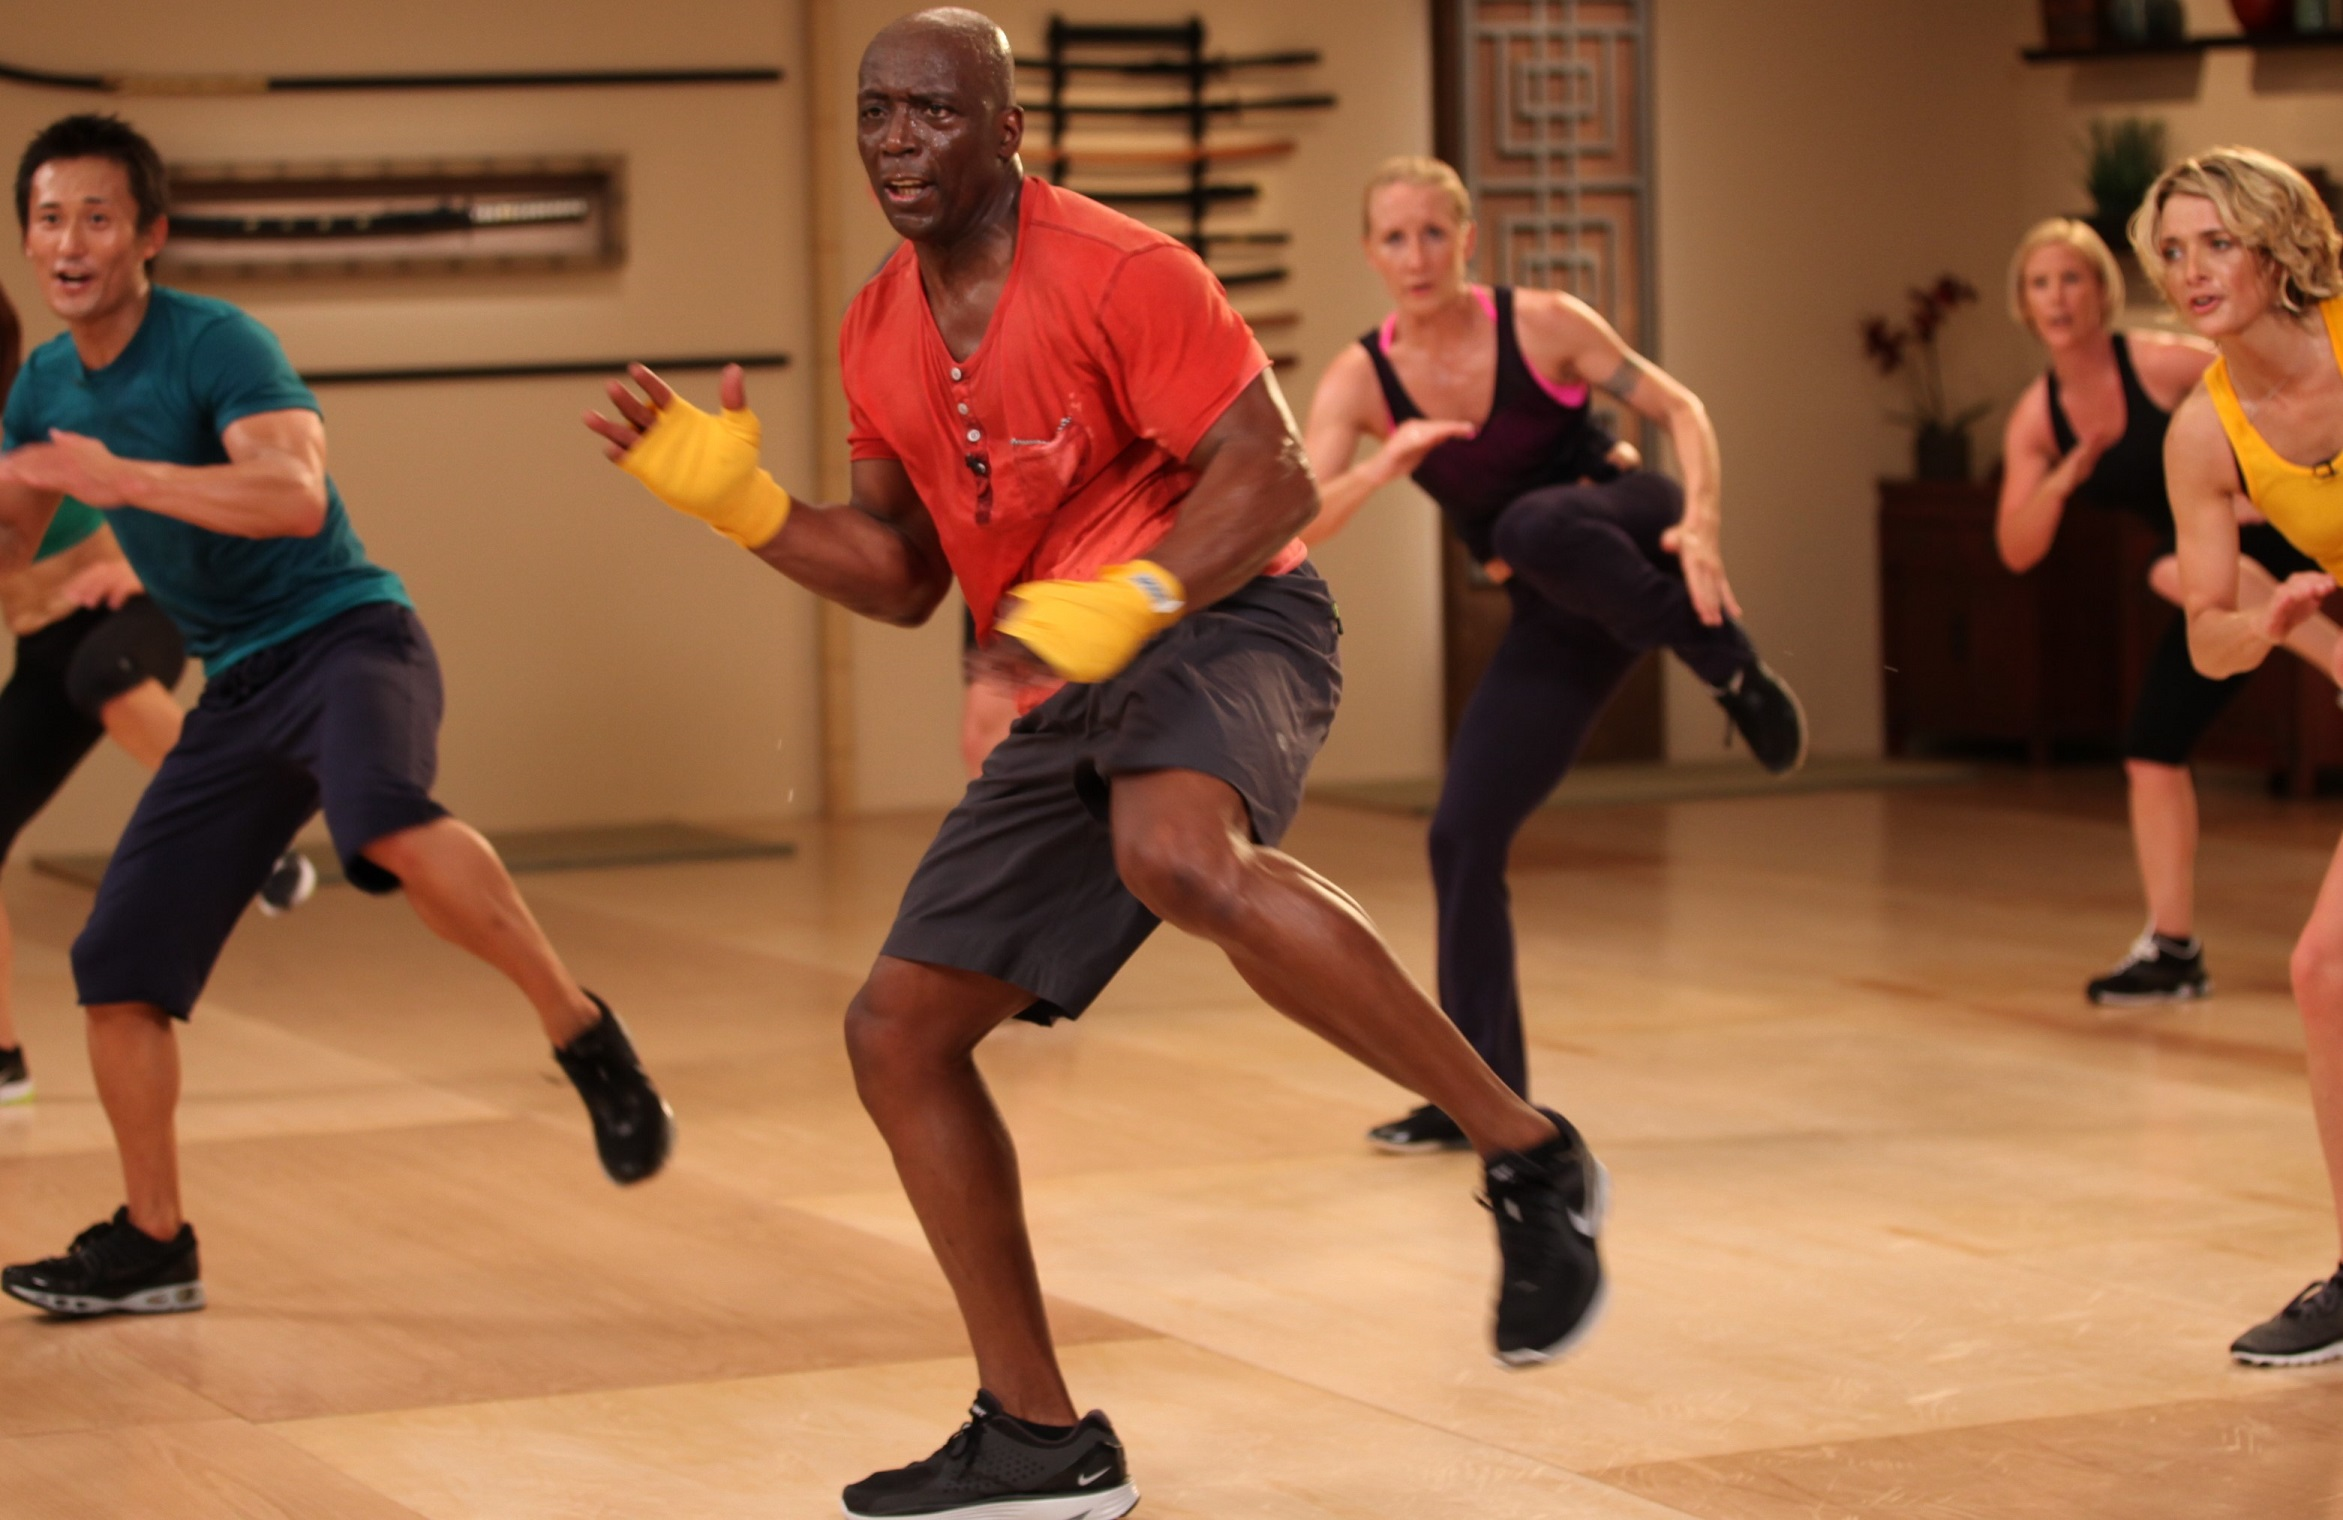 billy blanks tae bo abdominalbilly blanks tae bo, billy blanks tae bo music, billy blanks youtube, billy blanks bootcamp, billy blanks tae bo amped, billy blanks biography, billy blanks vs, billy blanks fitness, billy blanks wiki, billy blanks cardio sculpt, billy blanks tae bo® ab burner, billy blanks tae bo max intensity, billy blanks 2017, billy blanks tae bo advanced burnout, billy blanks tae bo abdominal, billy blanks cardio workout, billy blanks junior, billy blanks jr, billy blanks jr net worth, billy blanks 2016